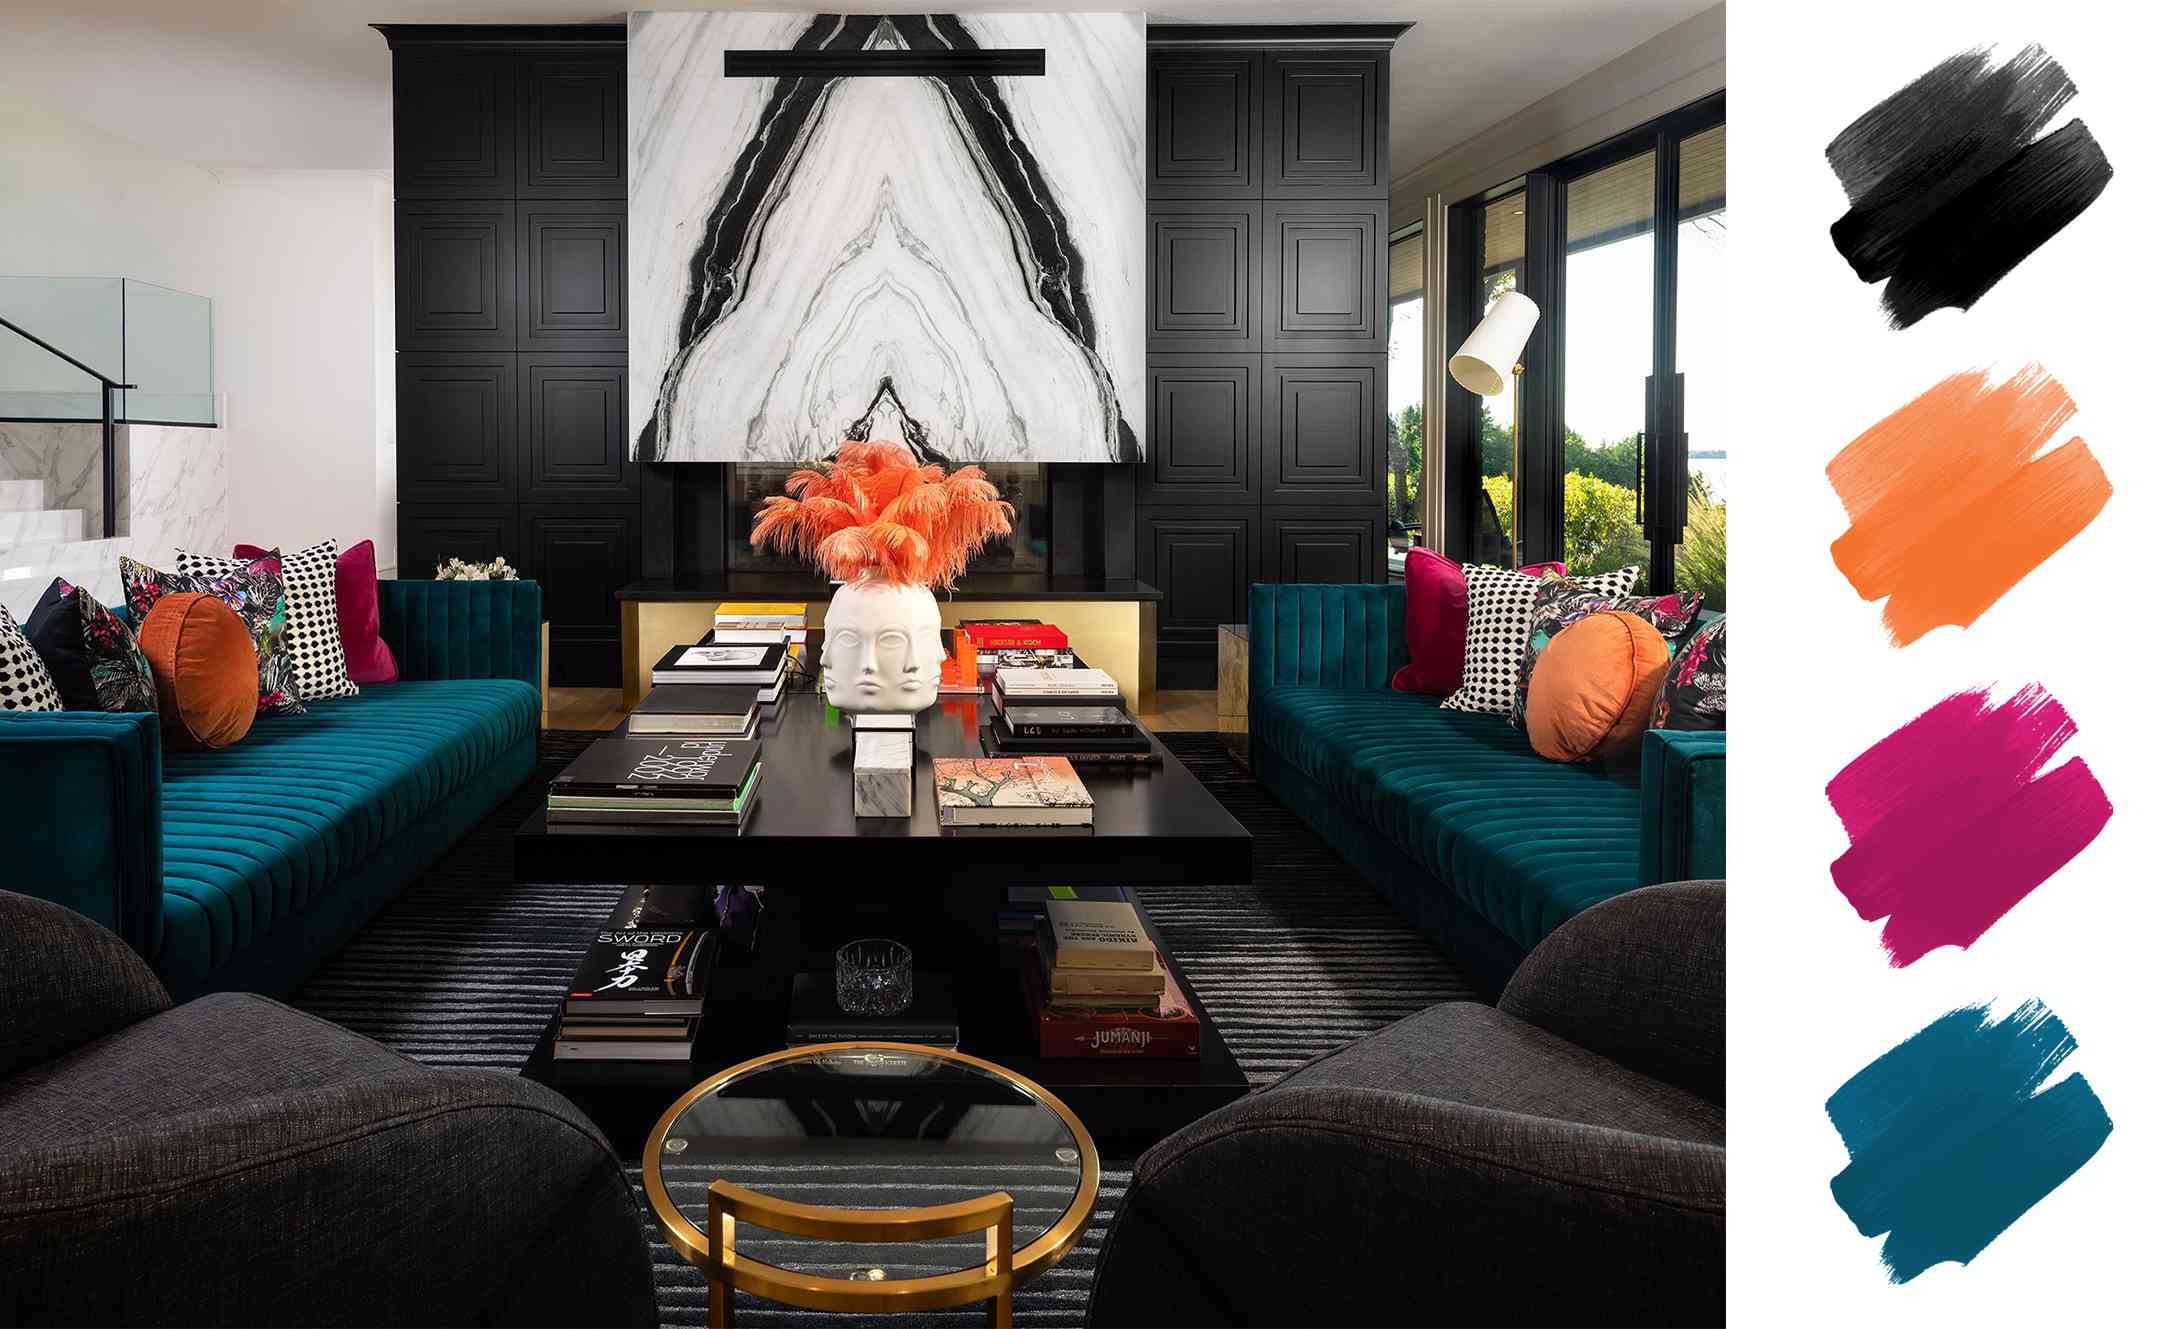 complementary color schemes - bold living room with peacock, citron, and fuchsia accents